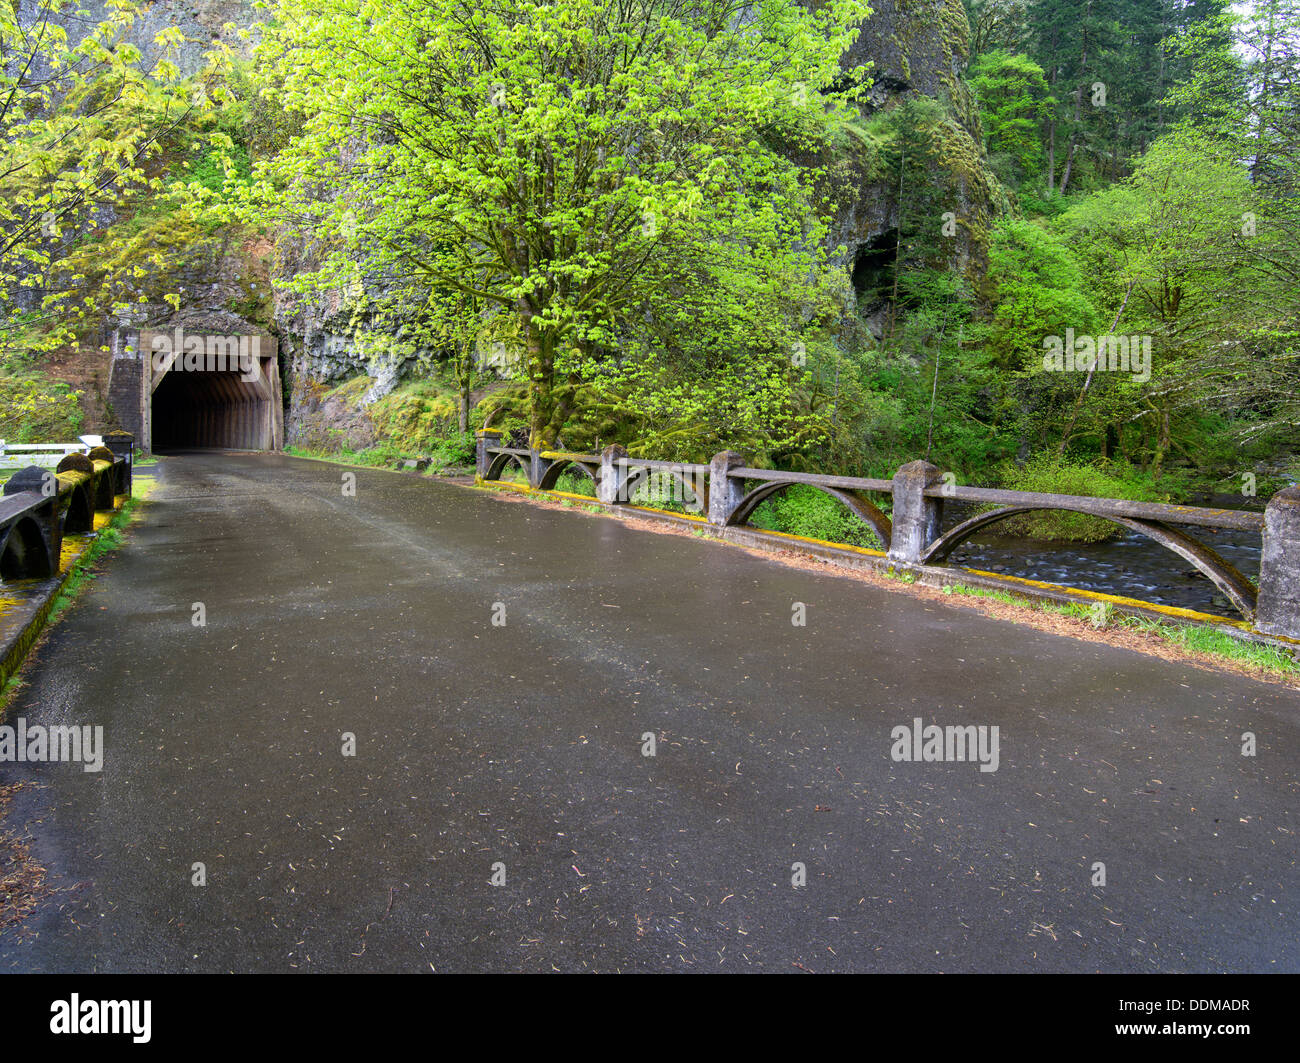 Old Columbia River Higghway and tunnel. Columbia River Gorge National Scenic Area. Oregon - Stock Image